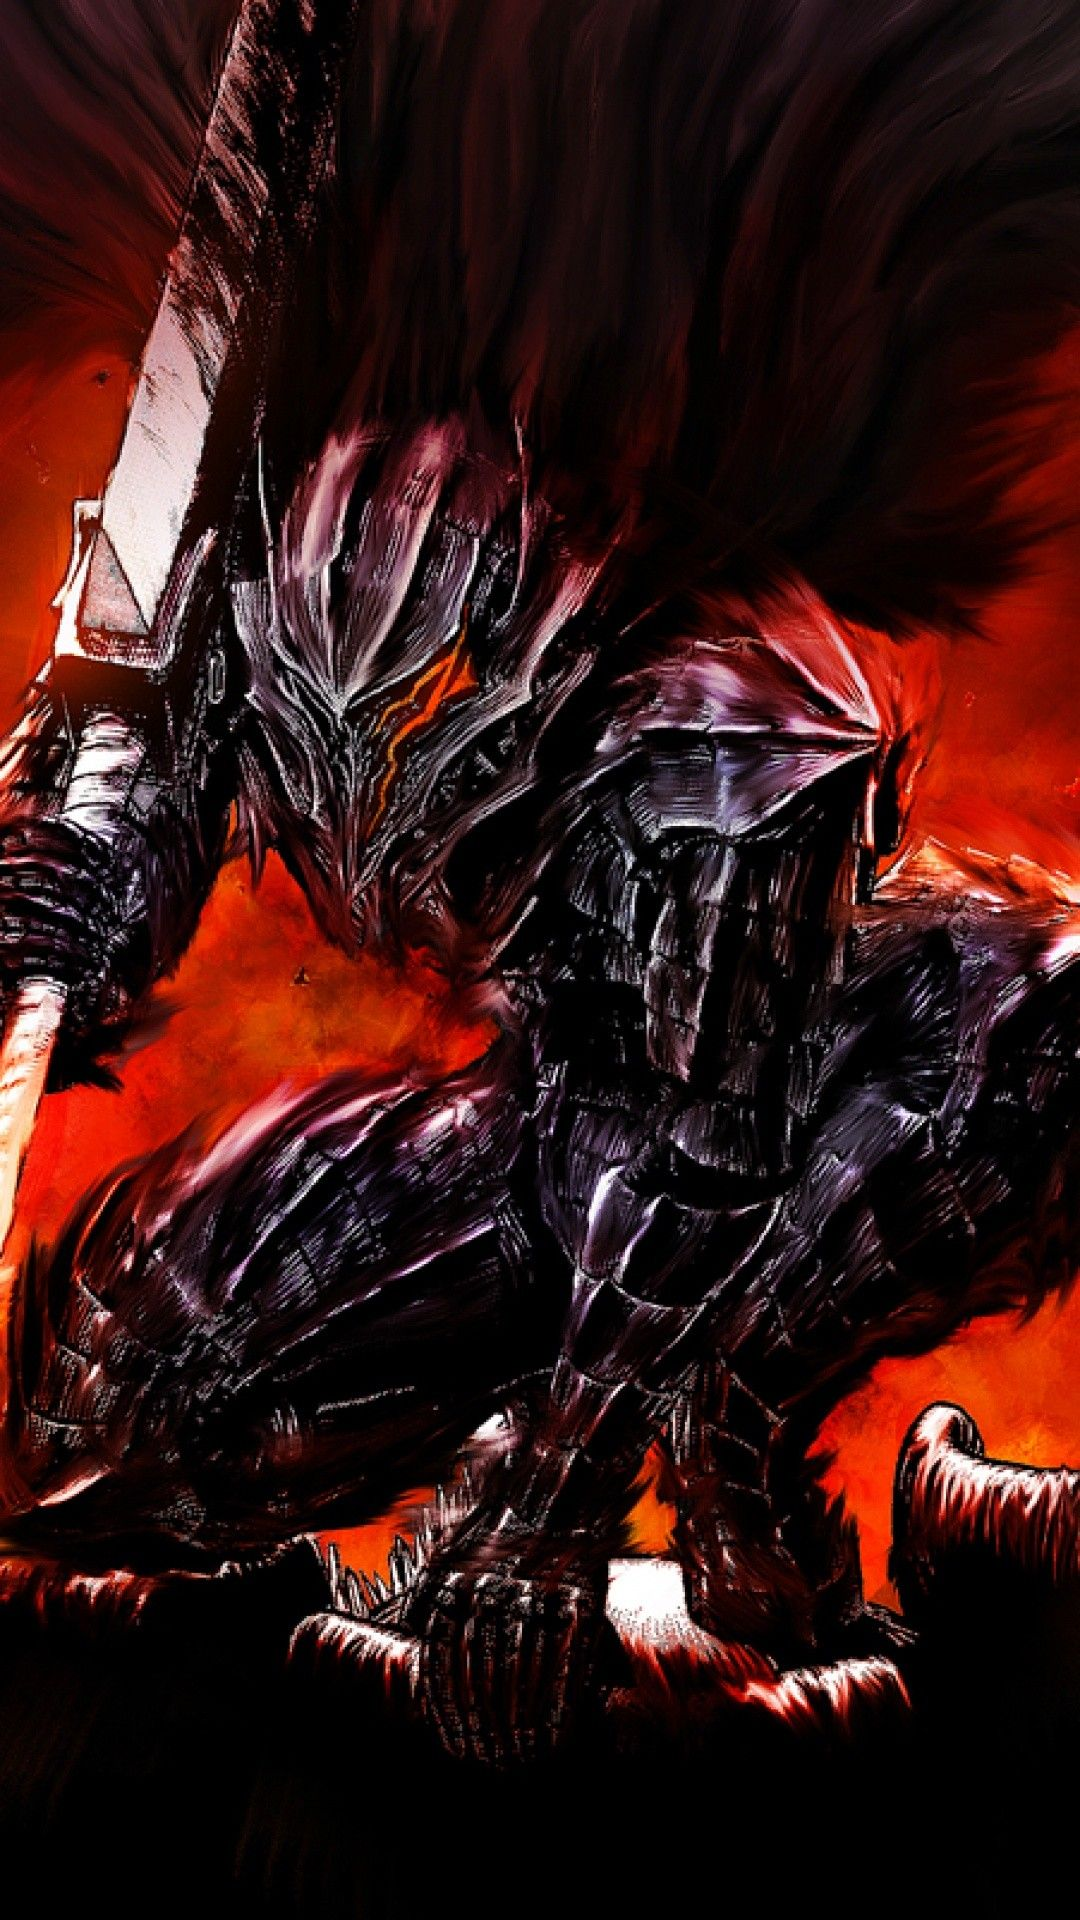 1080x1920 Berserker Armor Iphone 5 Wallpaper Id 52922